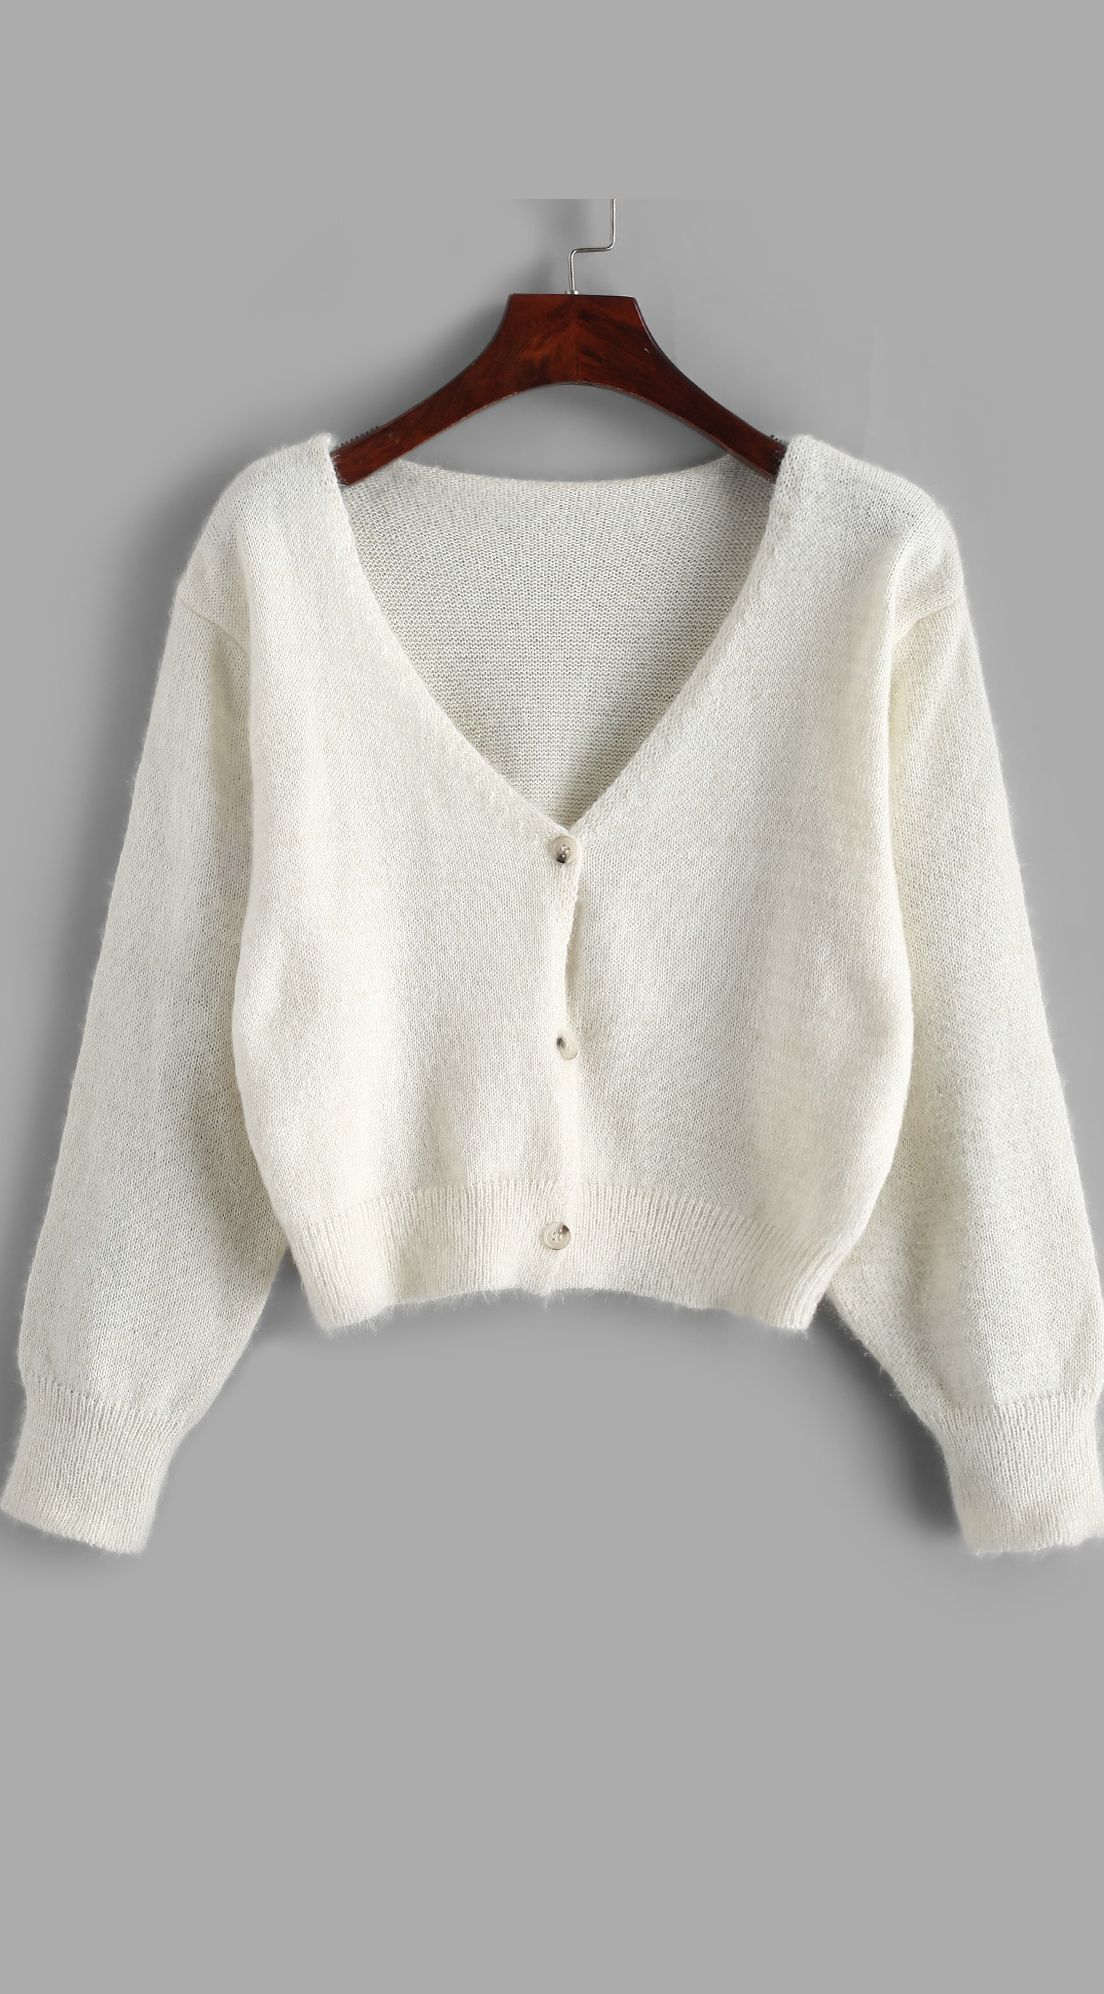 Fuzzy Button Up V Neck Cropped Cardigan Type: Cardigans